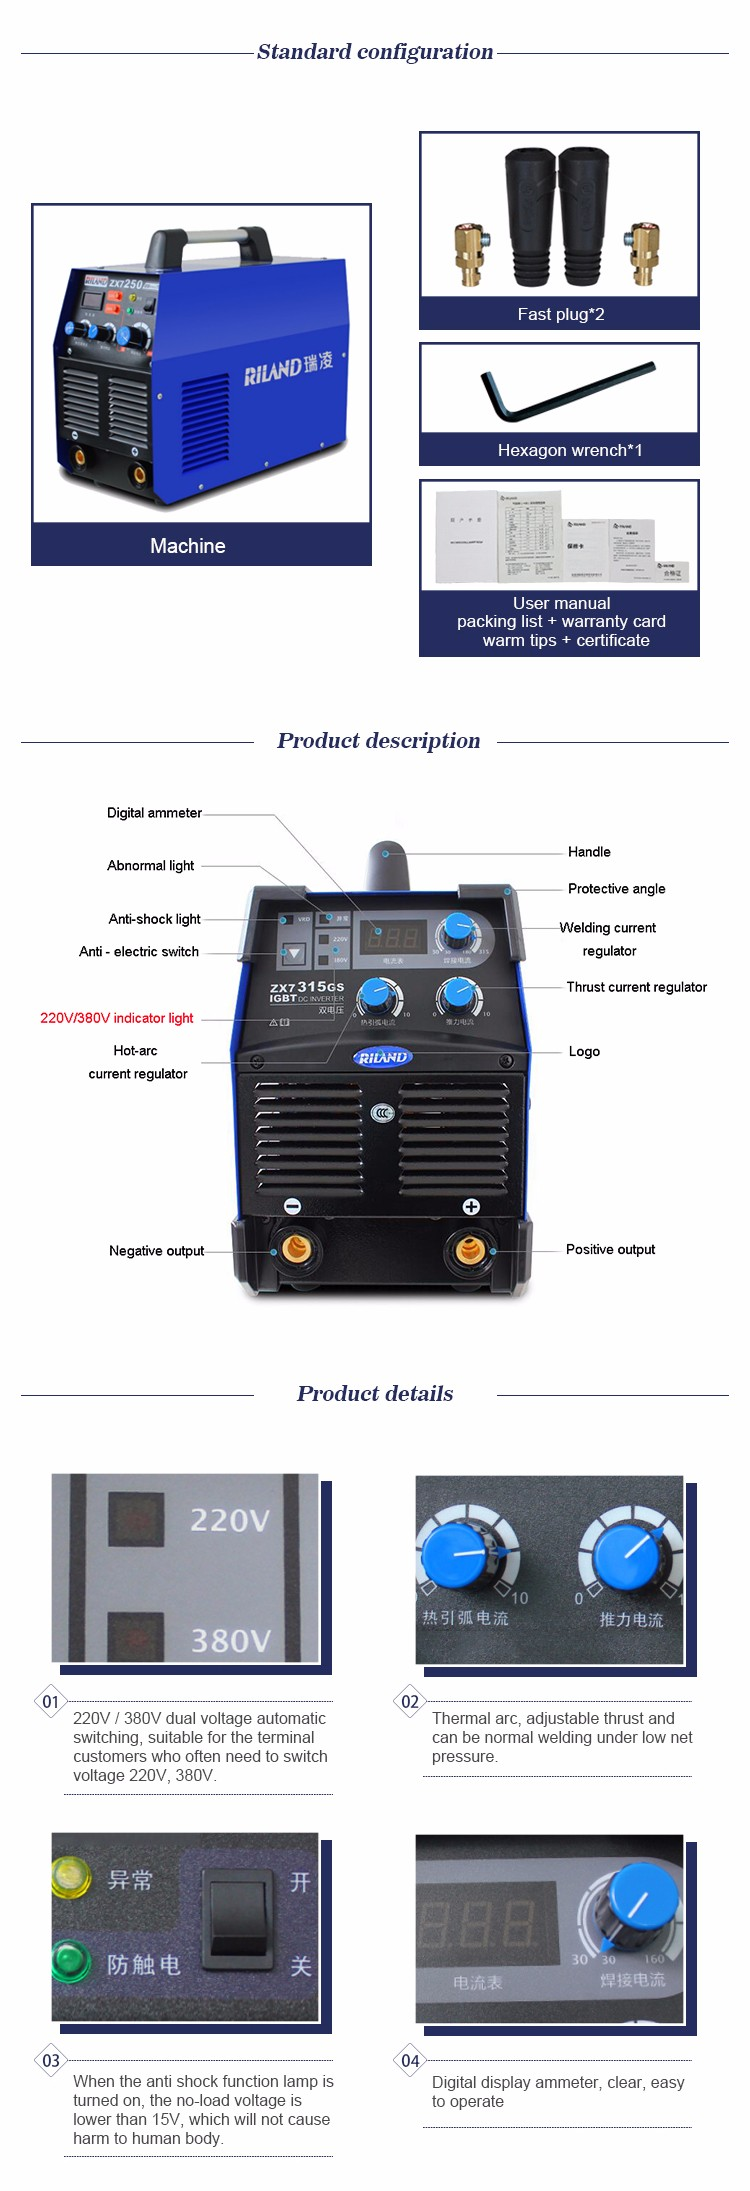 Electric Portable Mini Inverter Arc Welding Machine View Diagram